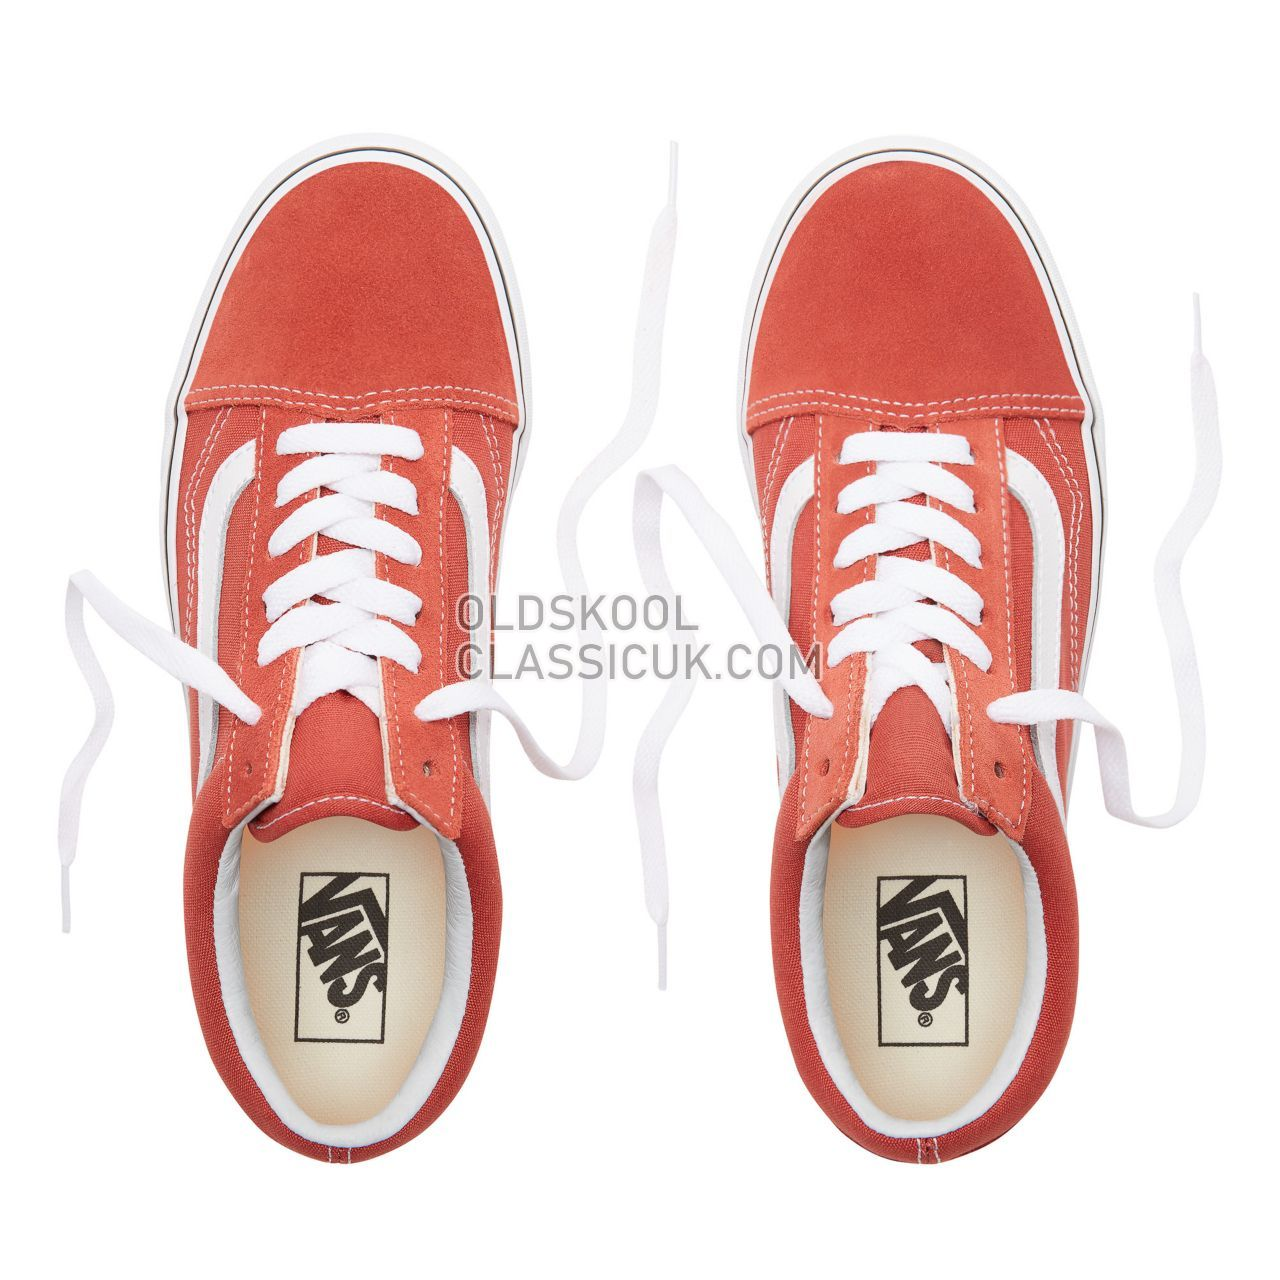 Vans Old Skool Sneakers Womens Hot Sauce/True White VN0A38G1UKZ Shoes